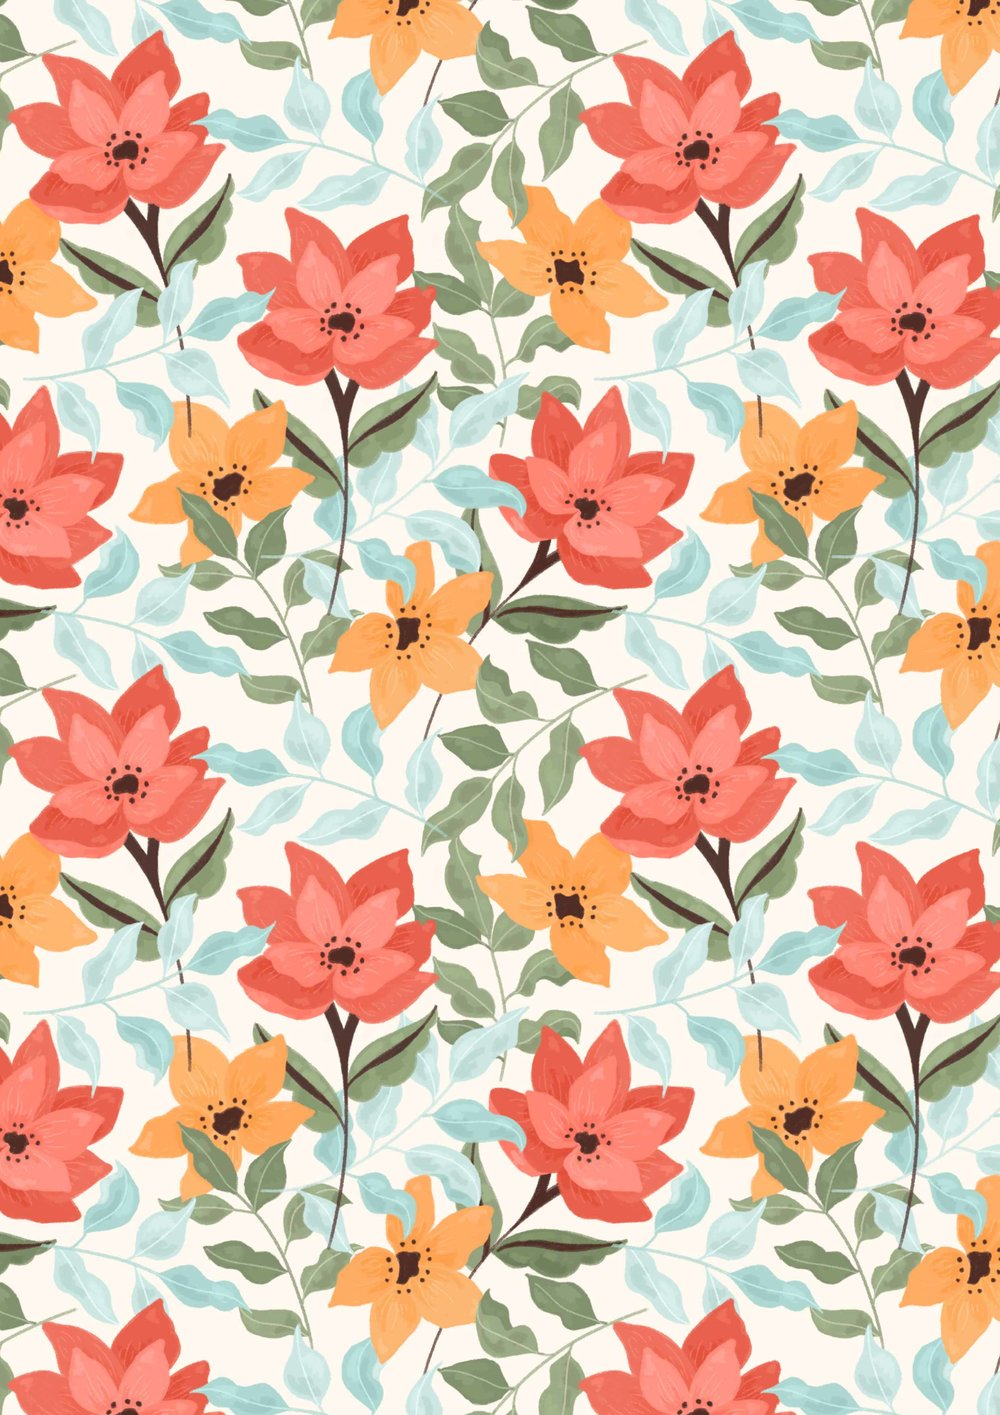 Illustrated floral pattern with red and orange flowers.